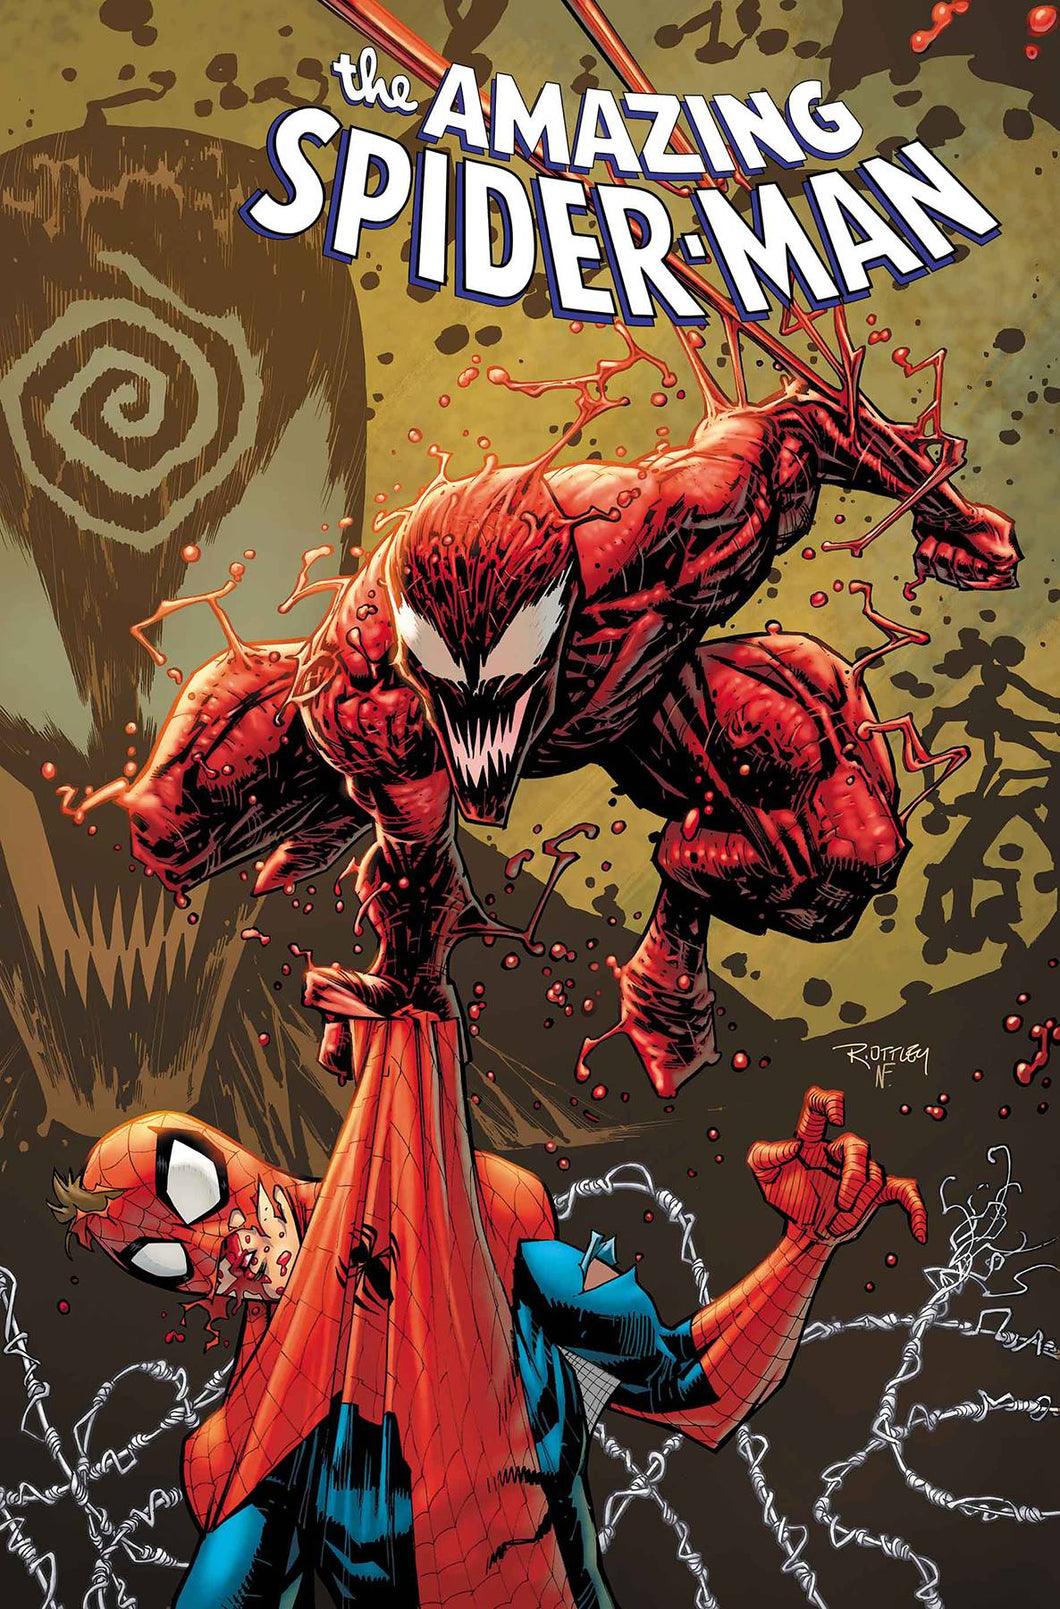 AMAZING SPIDER-MAN #30 09/25/19 FOC 09/02/19